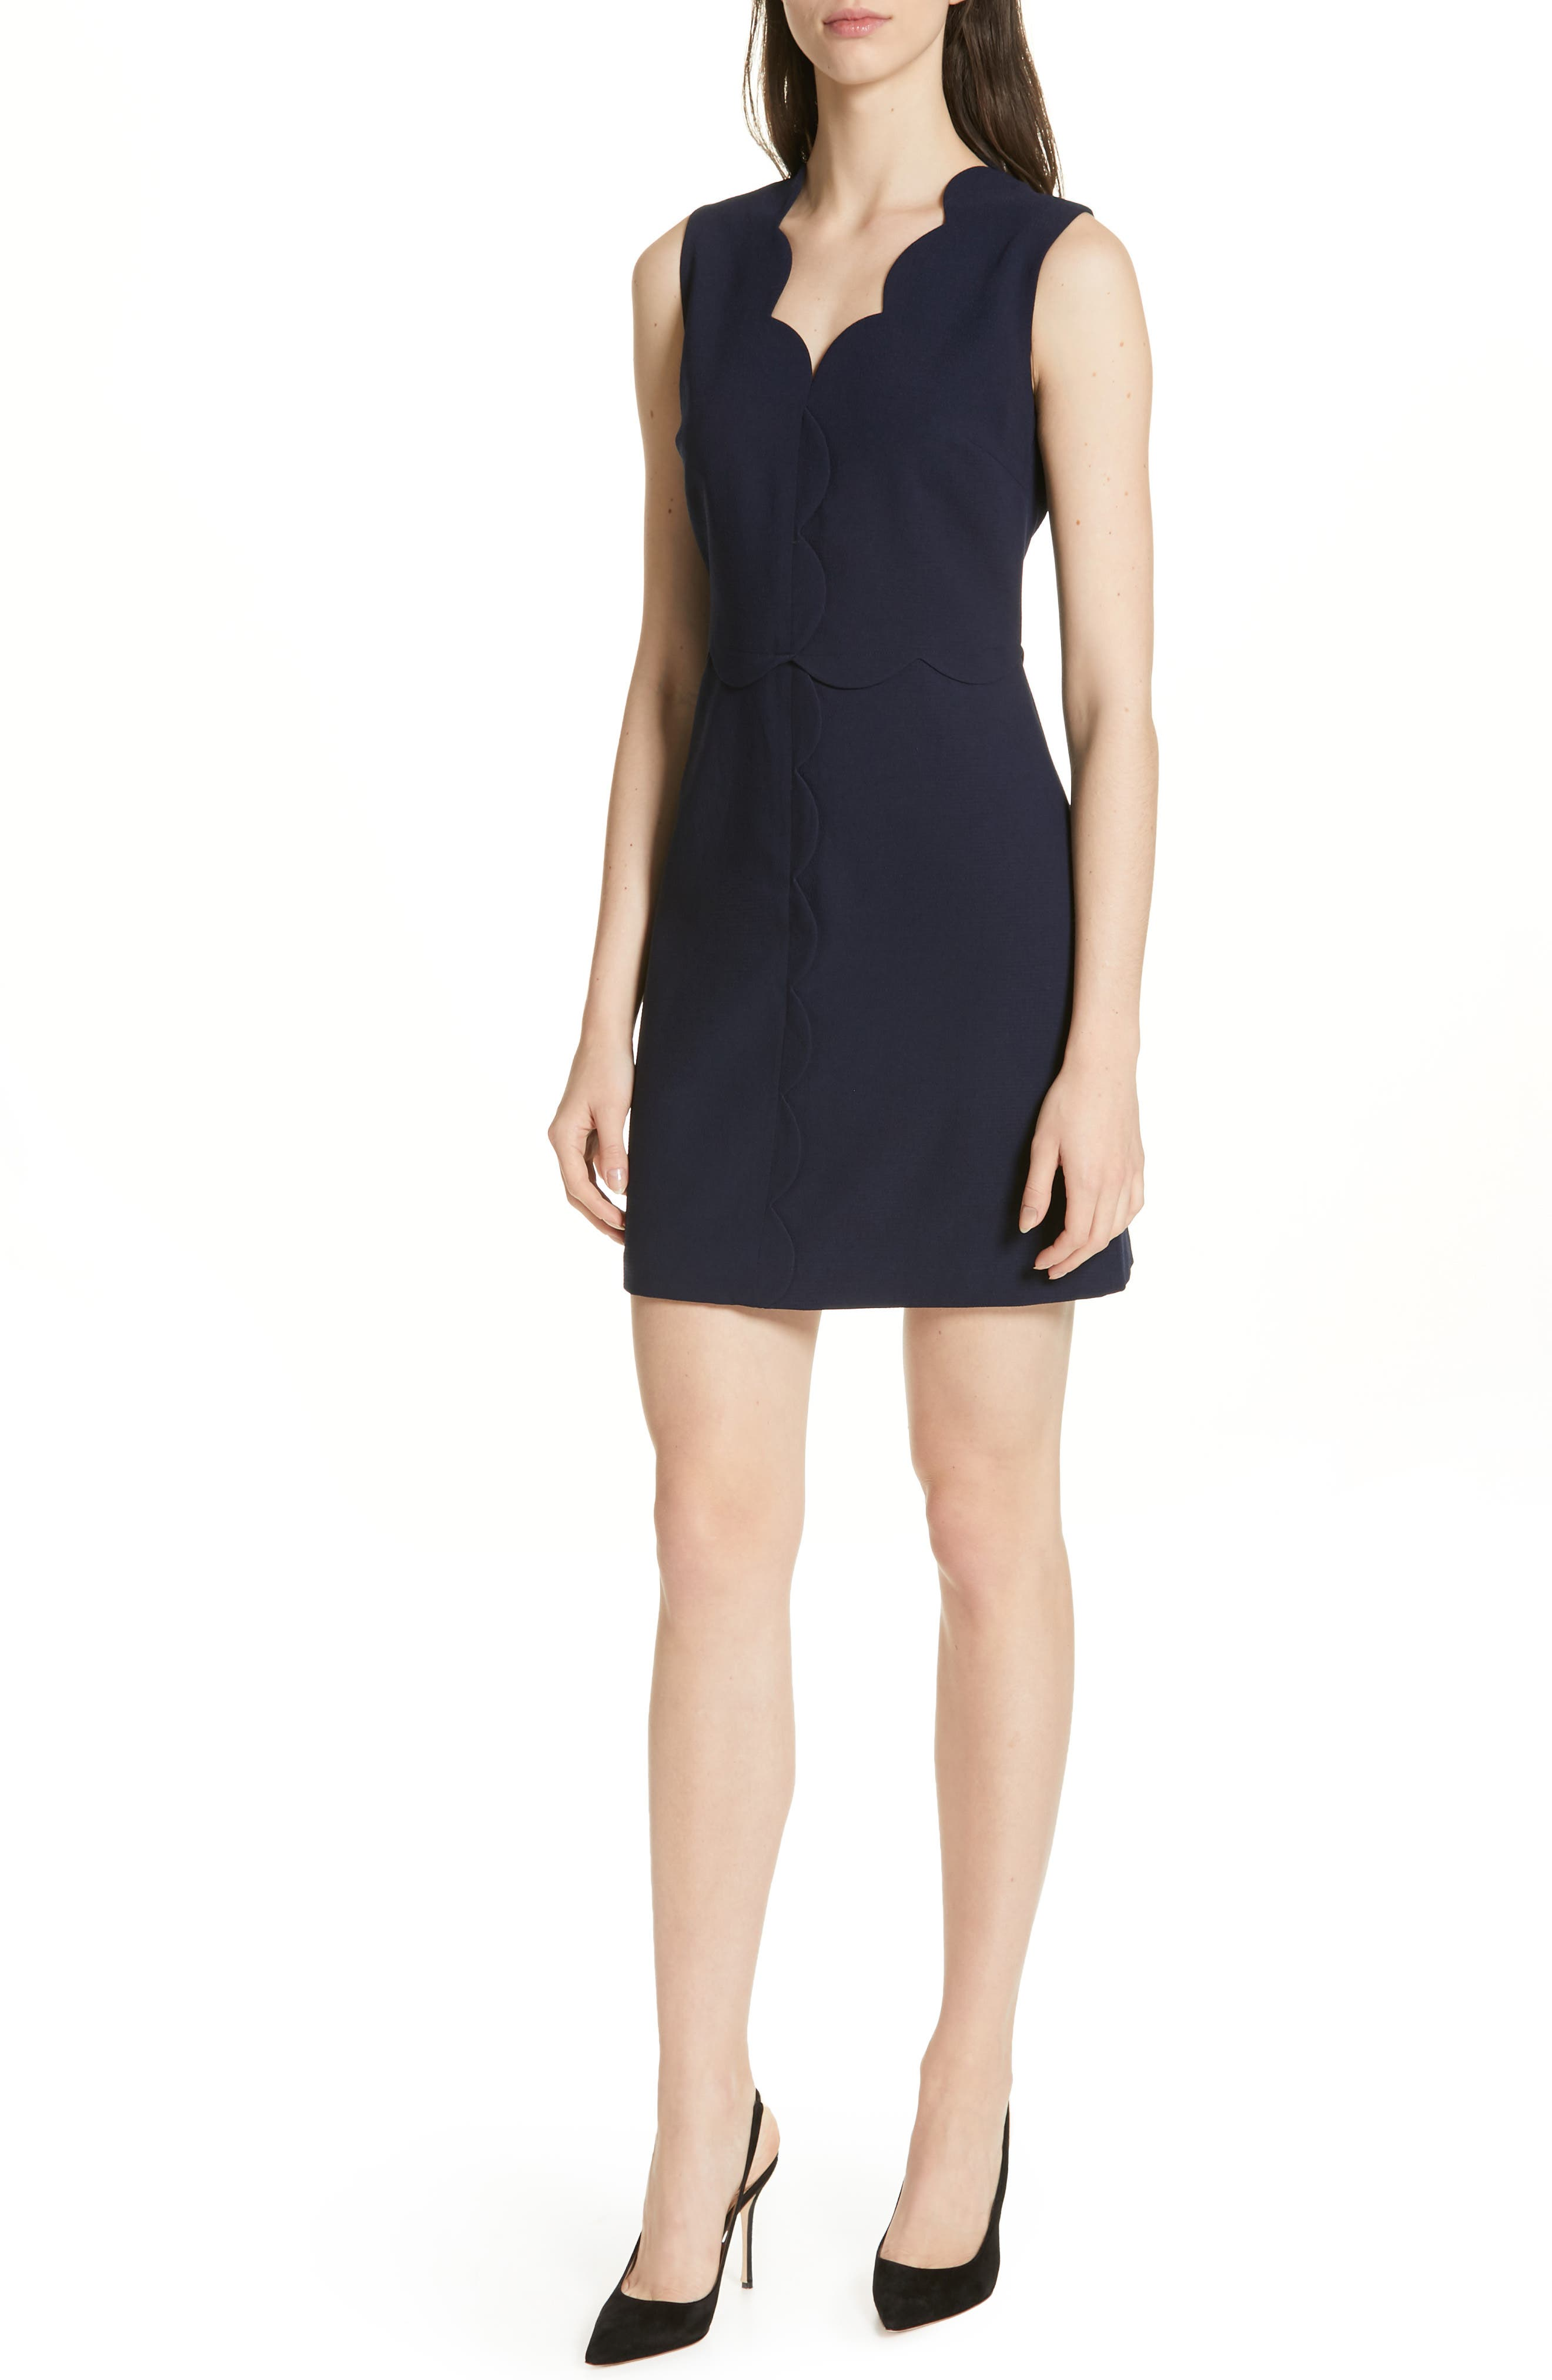 Rubeyed Scallop Edge A-Line Dress, Main, color, DARK BLUE